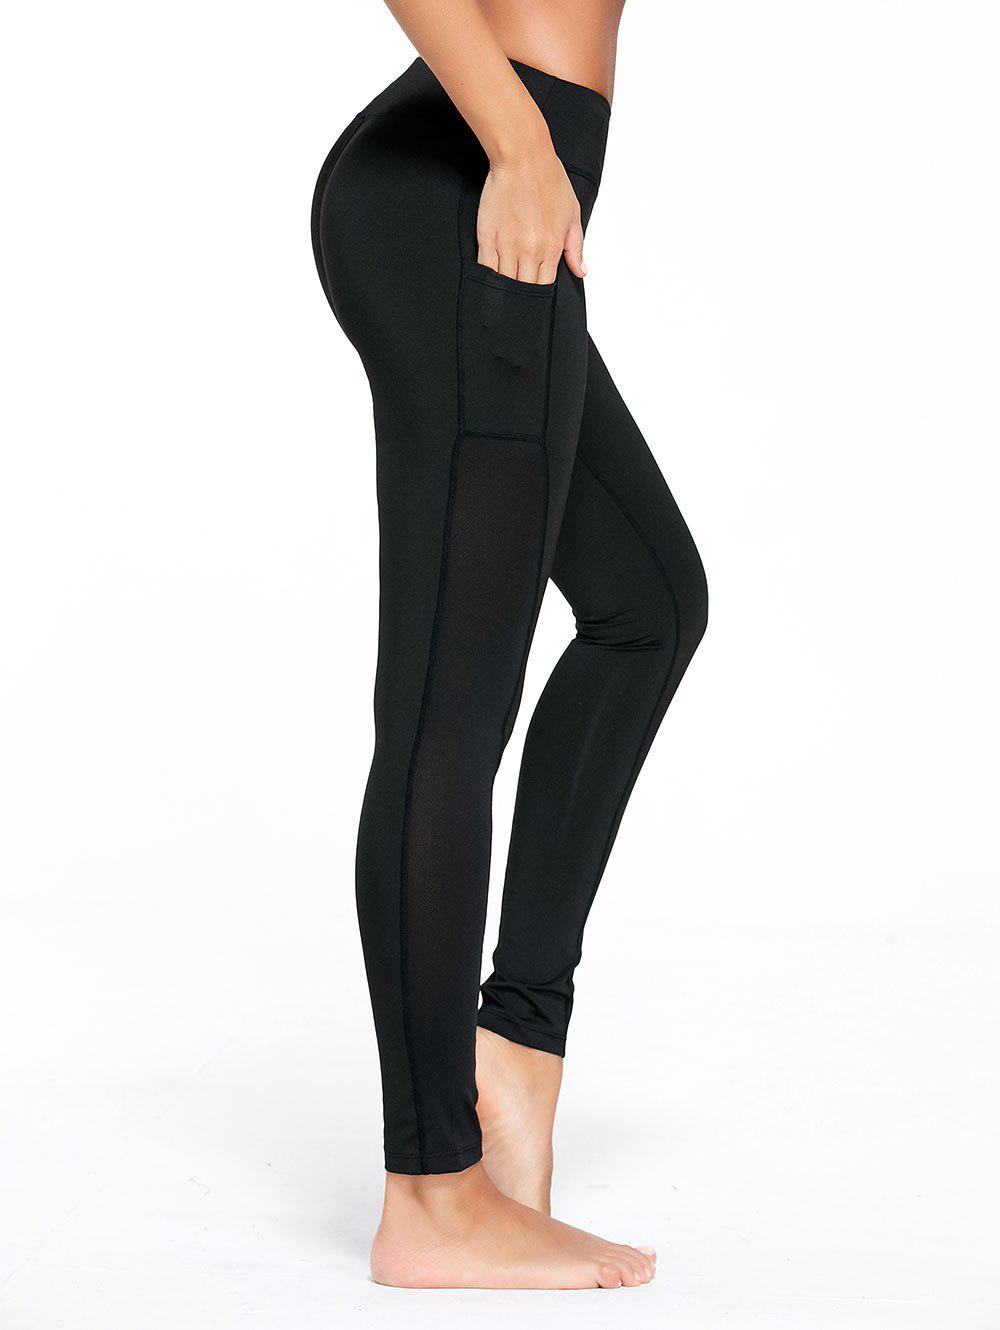 Stretchy Side Pocket Workout LeggingsWOMEN<br><br>Size: L; Color: BLACK; Style: Active; Length: Ninth; Material: Cotton Blends,Polyester,Spandex; Fit Type: Skinny; Waist Type: High; Closure Type: Elastic Waist; Pattern Type: Others; Pant Style: Pencil Pants; Elasticity: Elastic; Weight: 0.2400kg; Package Contents: 1 x Leggings;